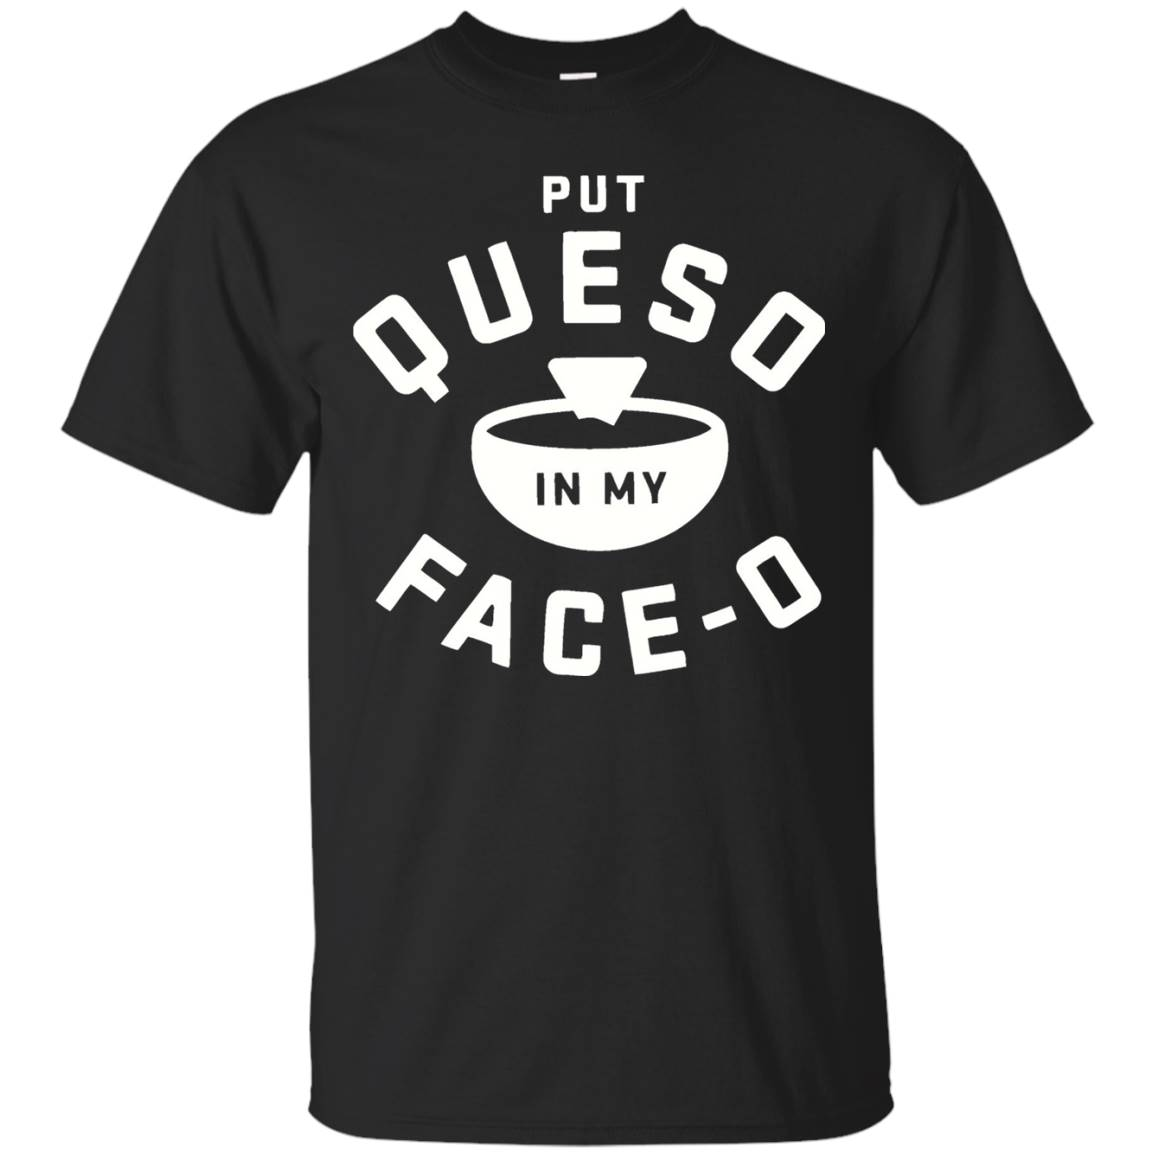 PUT QUESO IN MY FACE-O TEE T-SHIRT